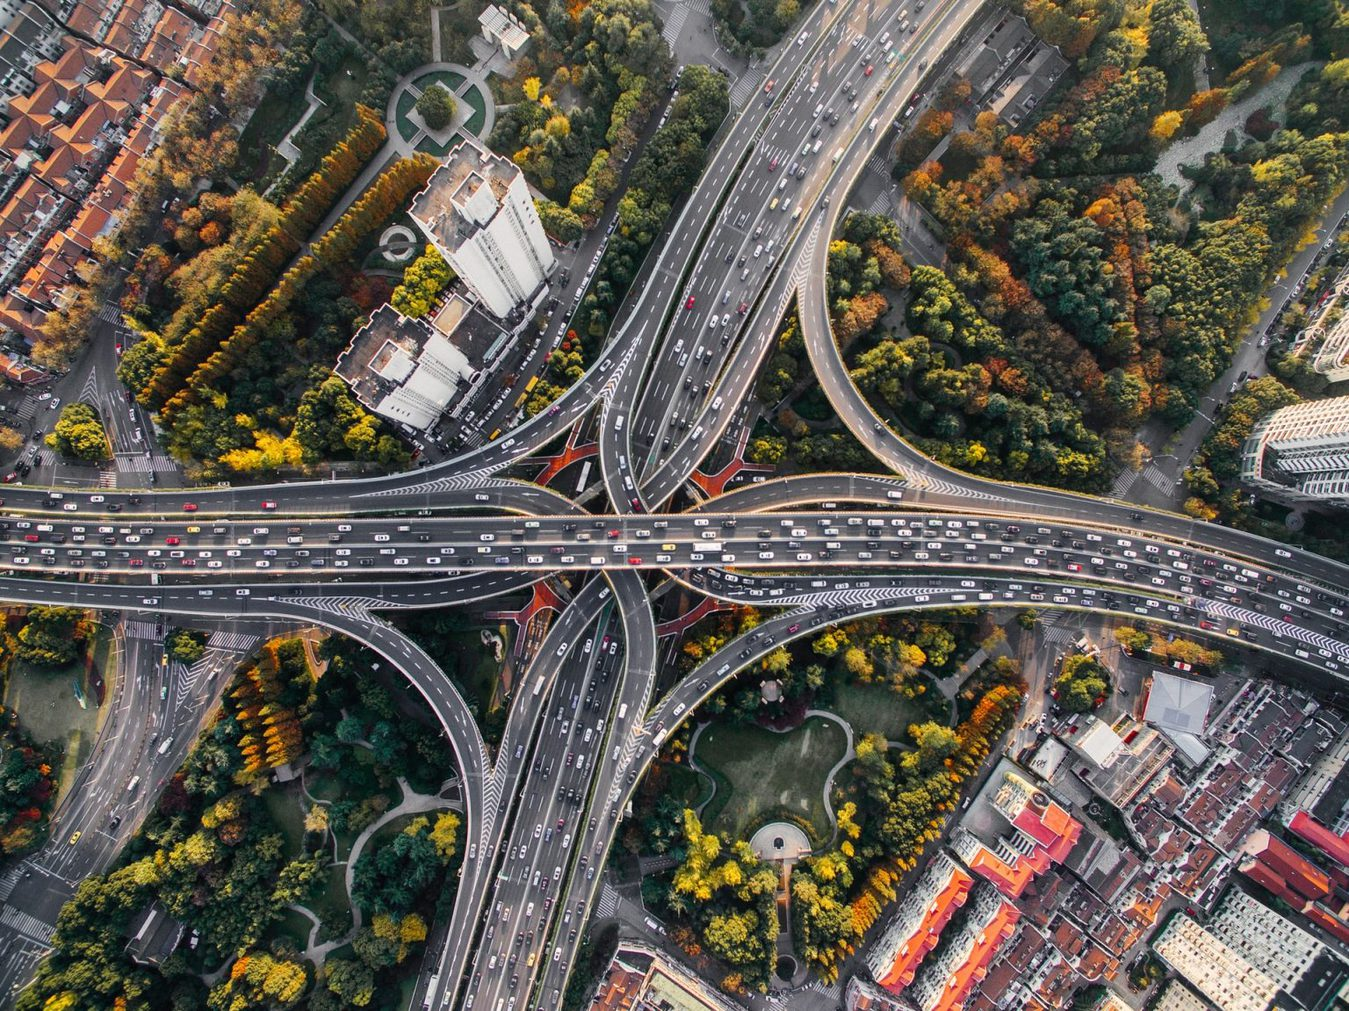 A highway junction shot from above